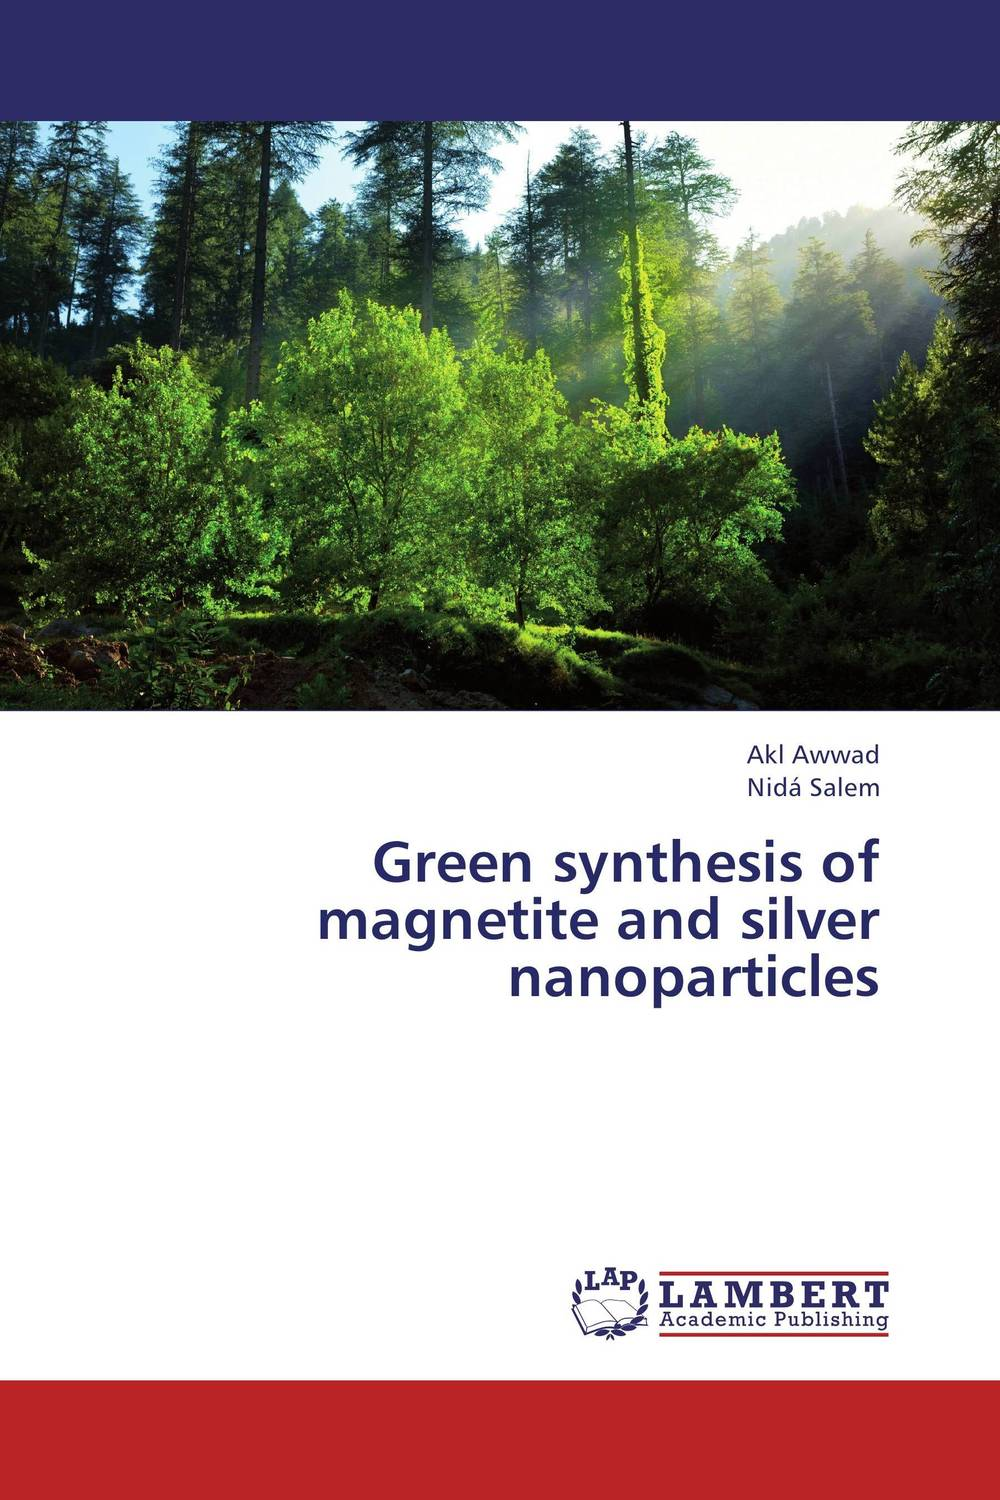 Green synthesis of magnetite and silver nanoparticles green synthesis of magnetite and silver nanoparticles